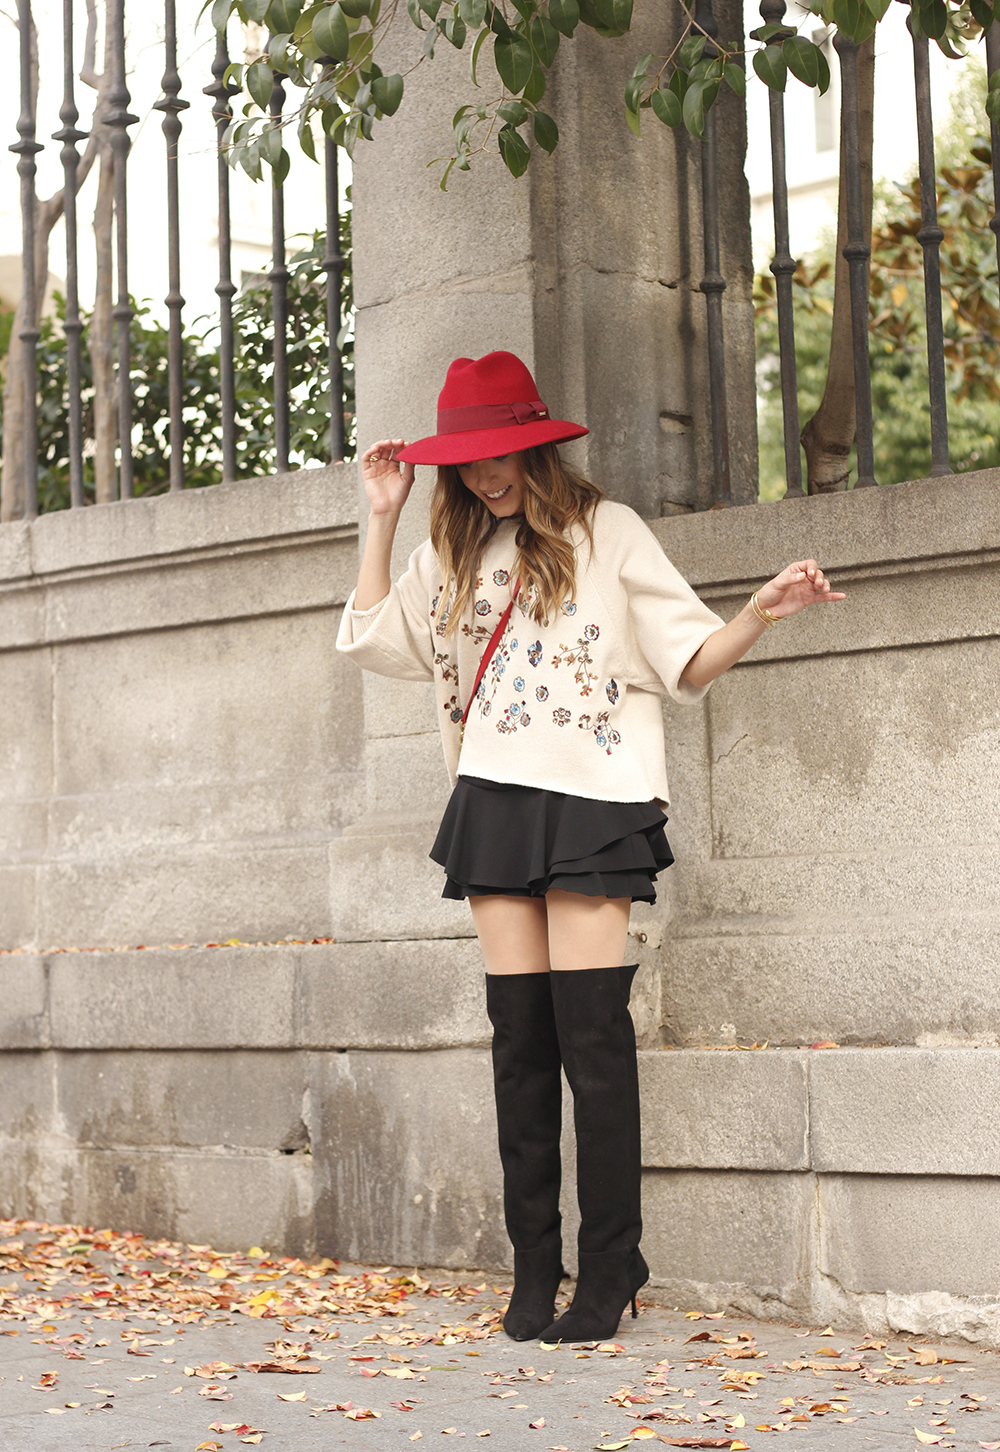 beige jersey with embroidered flowers over the knee black boots red hat street style fashion inspiration outfit02